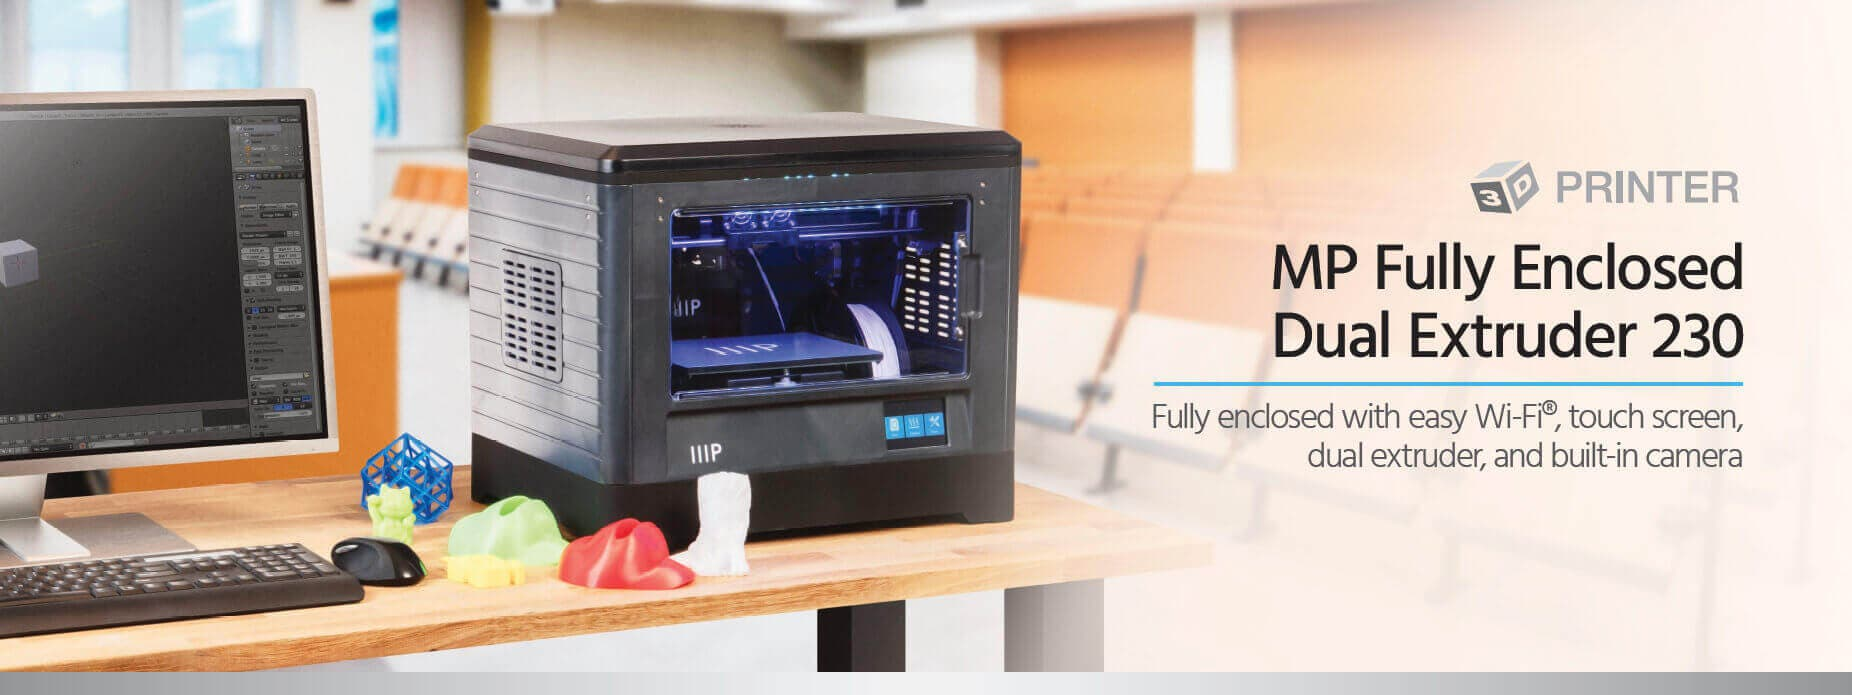 L'imprimante 3D MP Fully Enclosed Dual Extruder 230